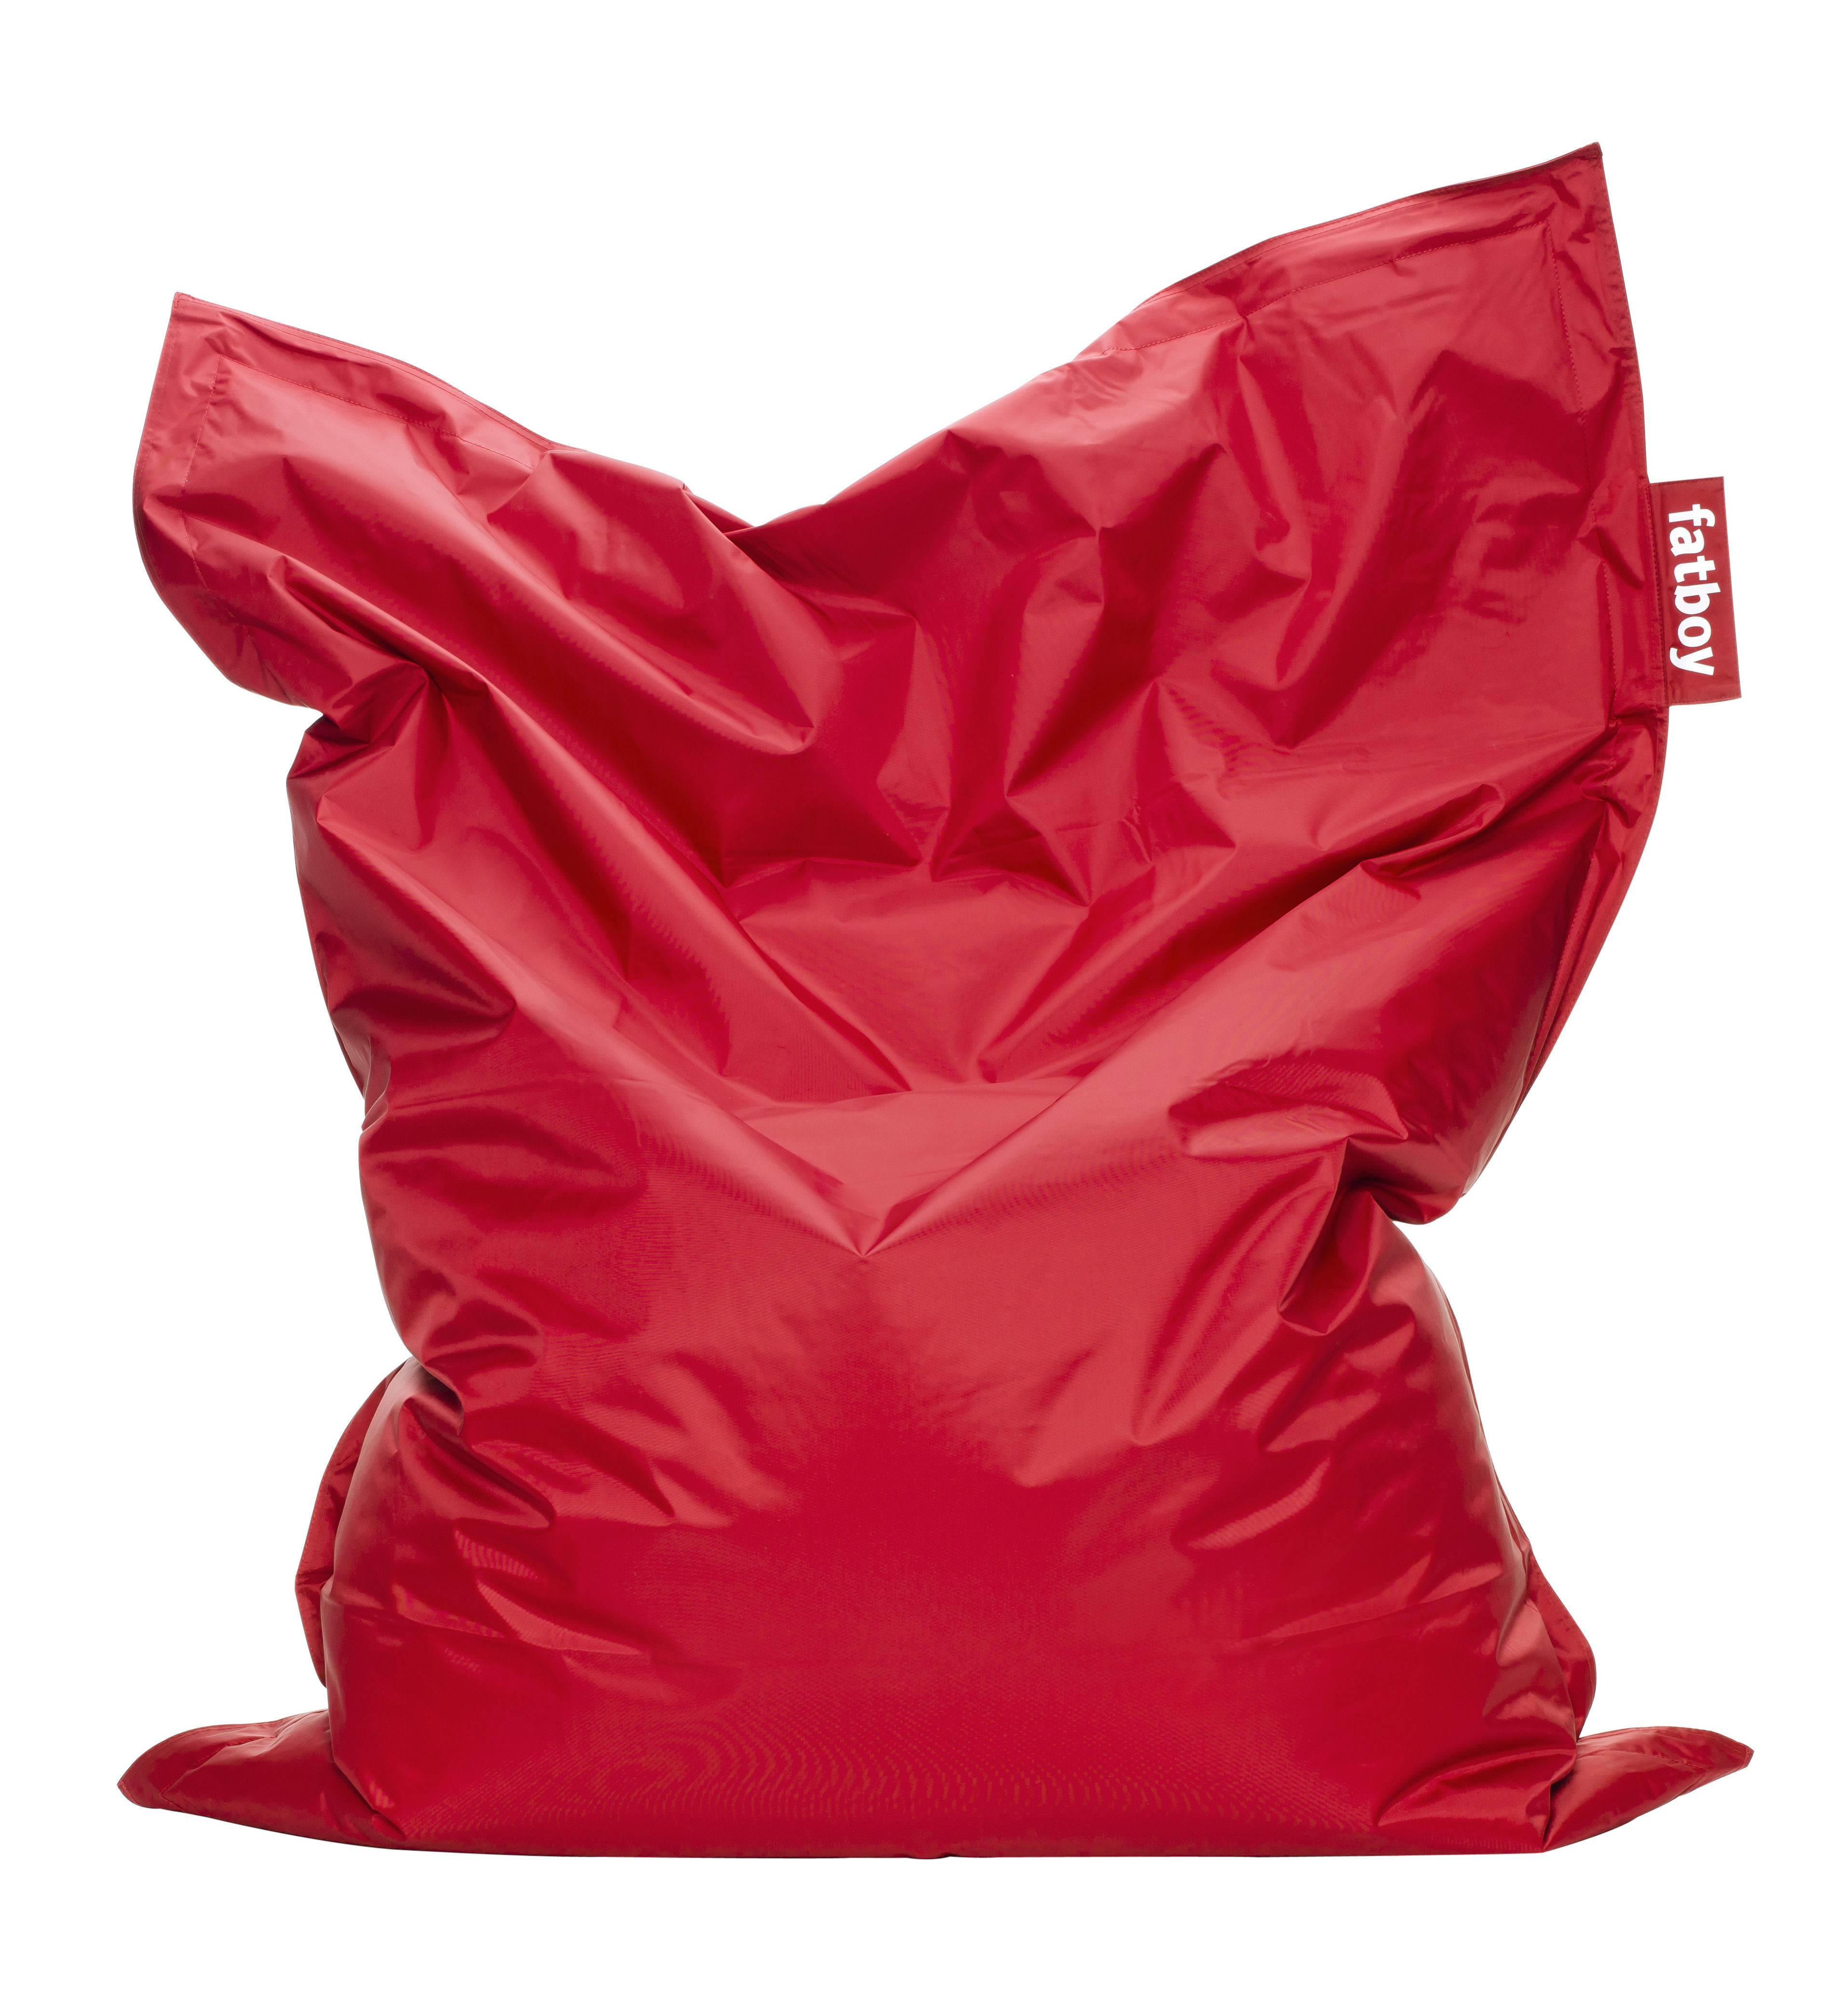 Pouf The Original Rouge Fatboy Made In Design